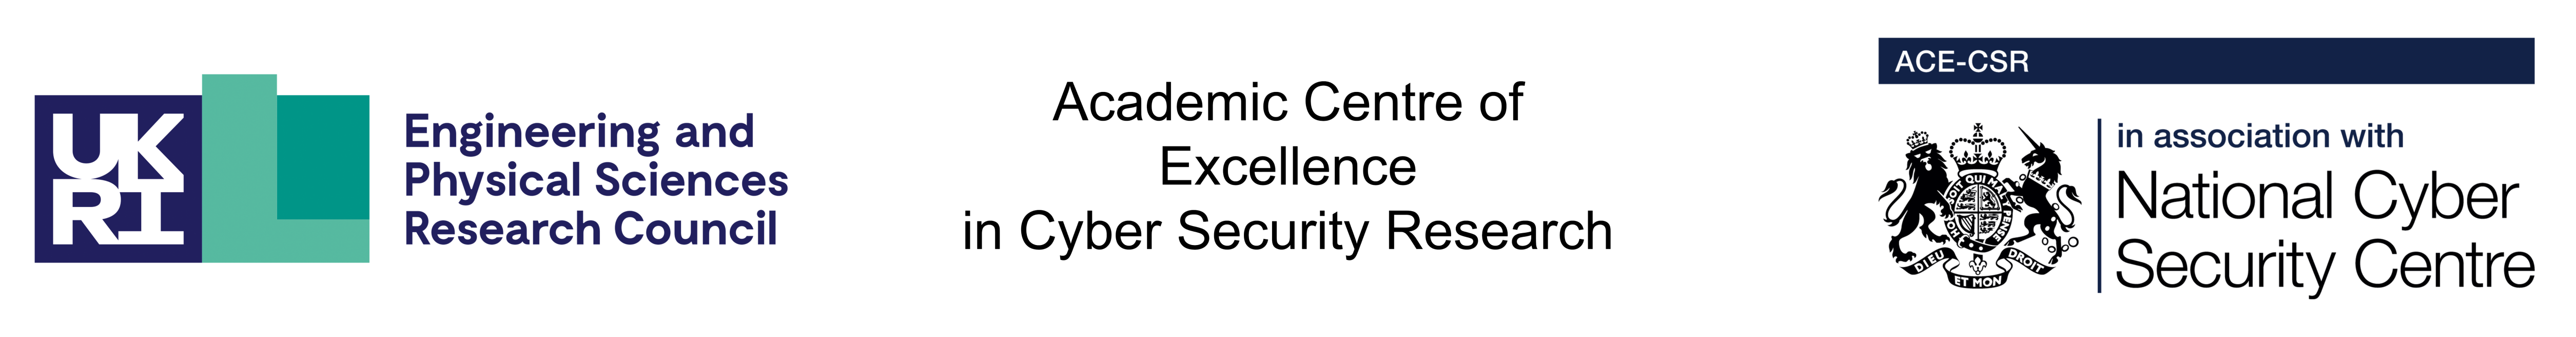 Cybersecurity Centre logos